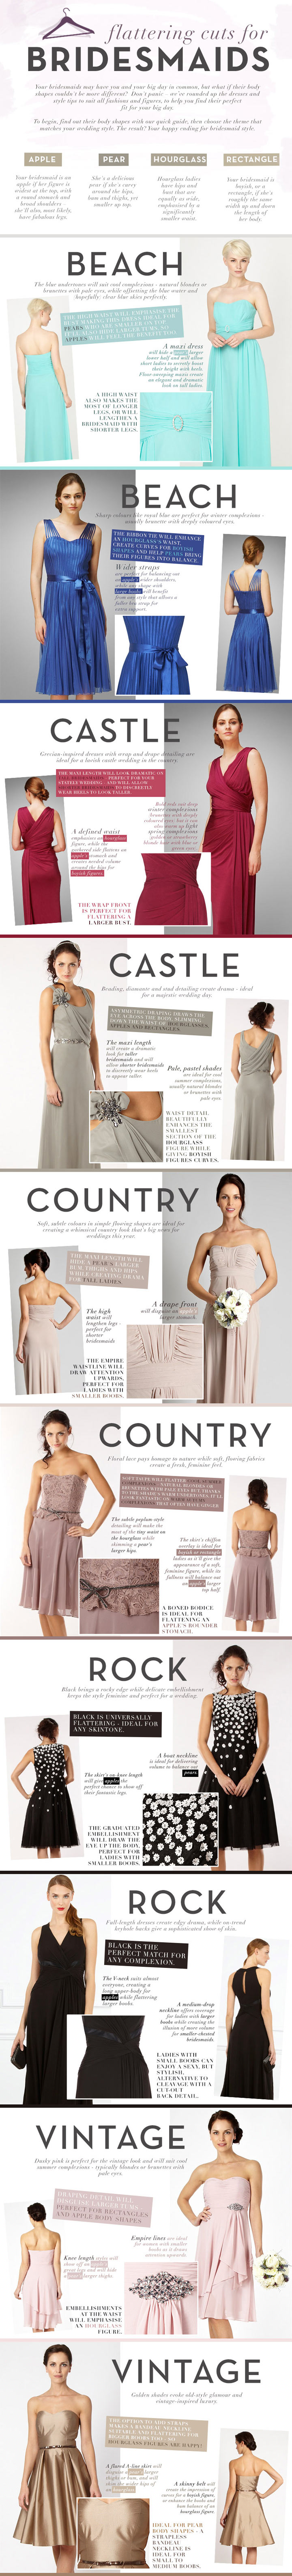 Bridesmaid Styling Tips-Infographic